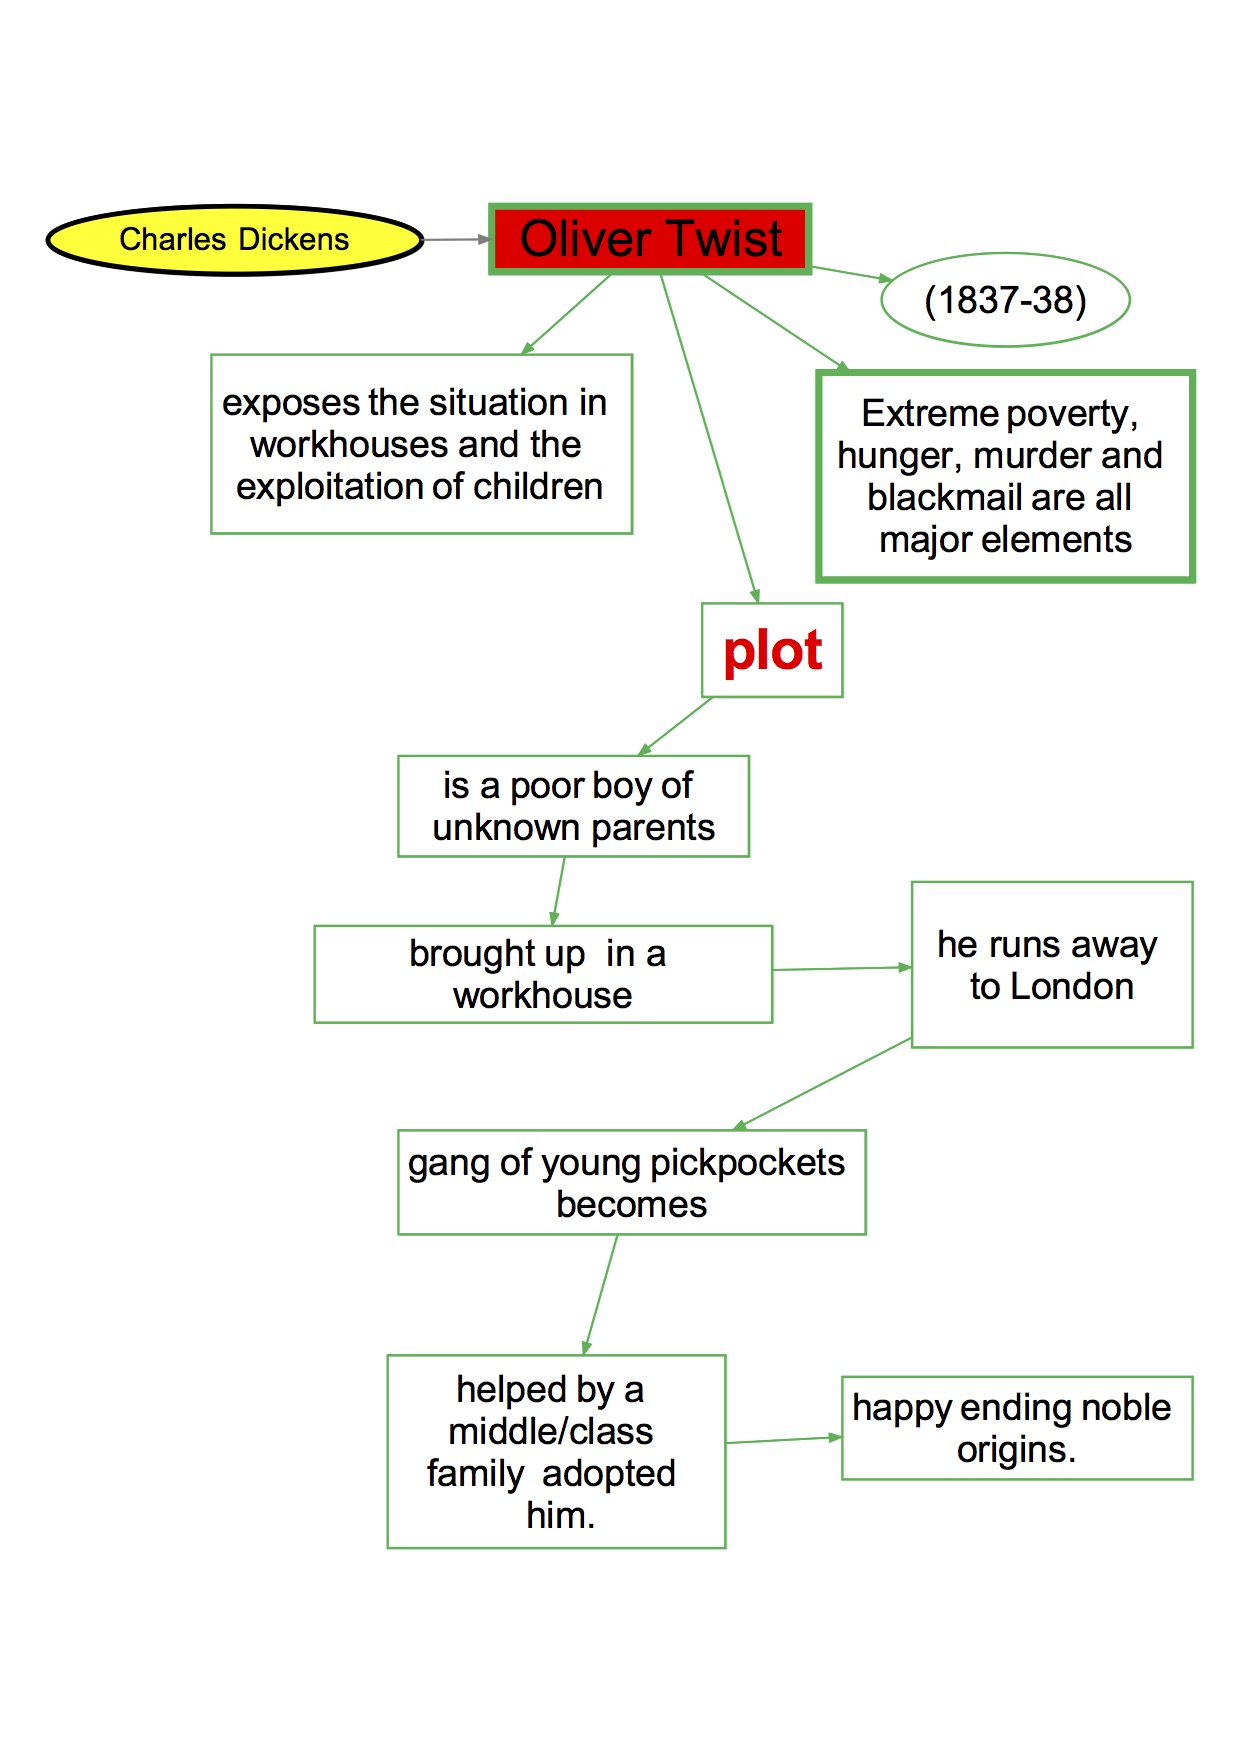 mappa concettuale Inglese 62 Dickens Oliver Twist - plot